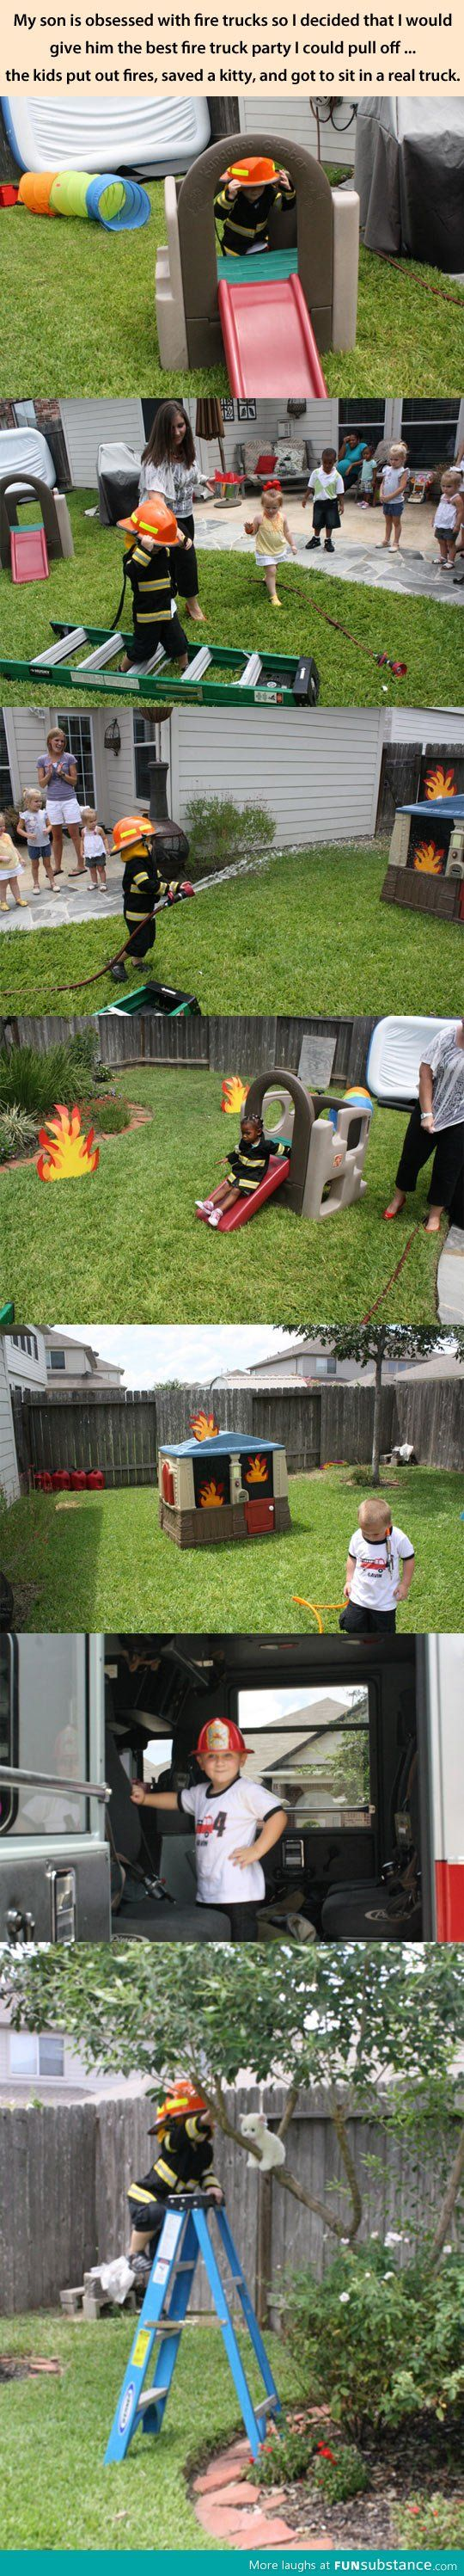 Fireman birthday party...omg Orion would love this activity!!!!